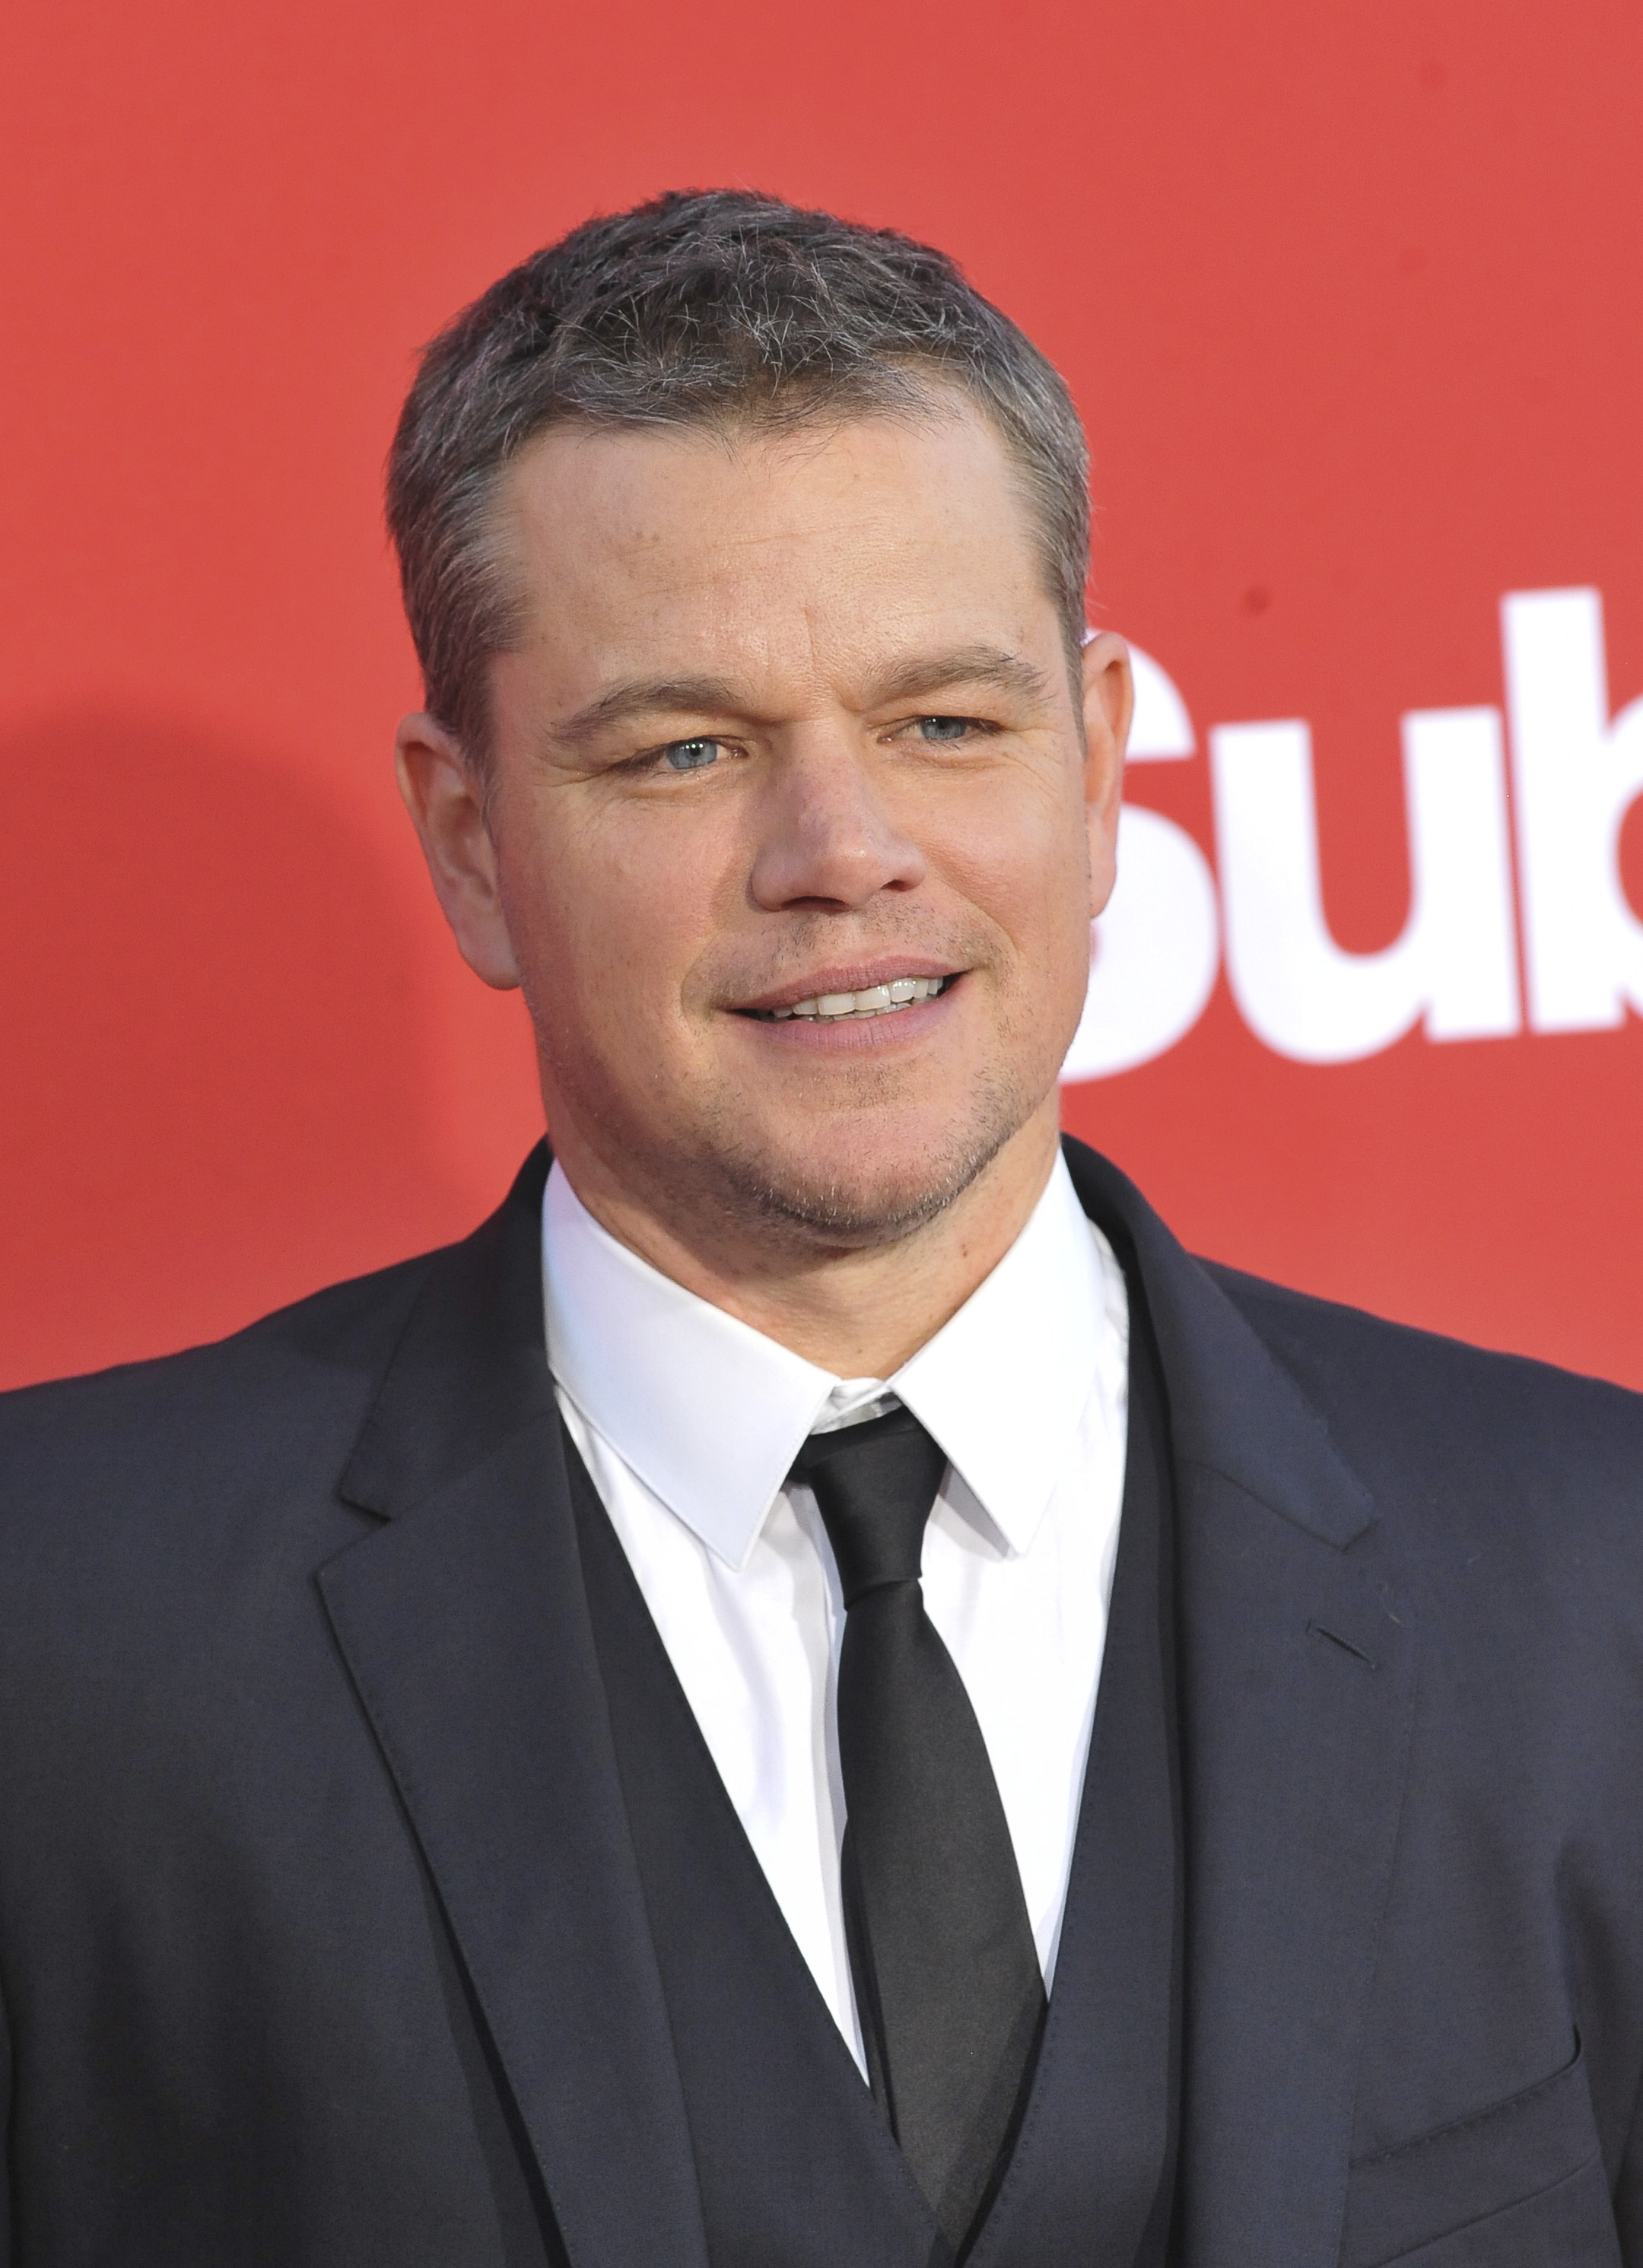 Film Premiere of Suburbicon  Featuring: Matt Damon Where: Los Angeles, California, United States When: 23 Oct 2017 Credit: Apega/WENN.com